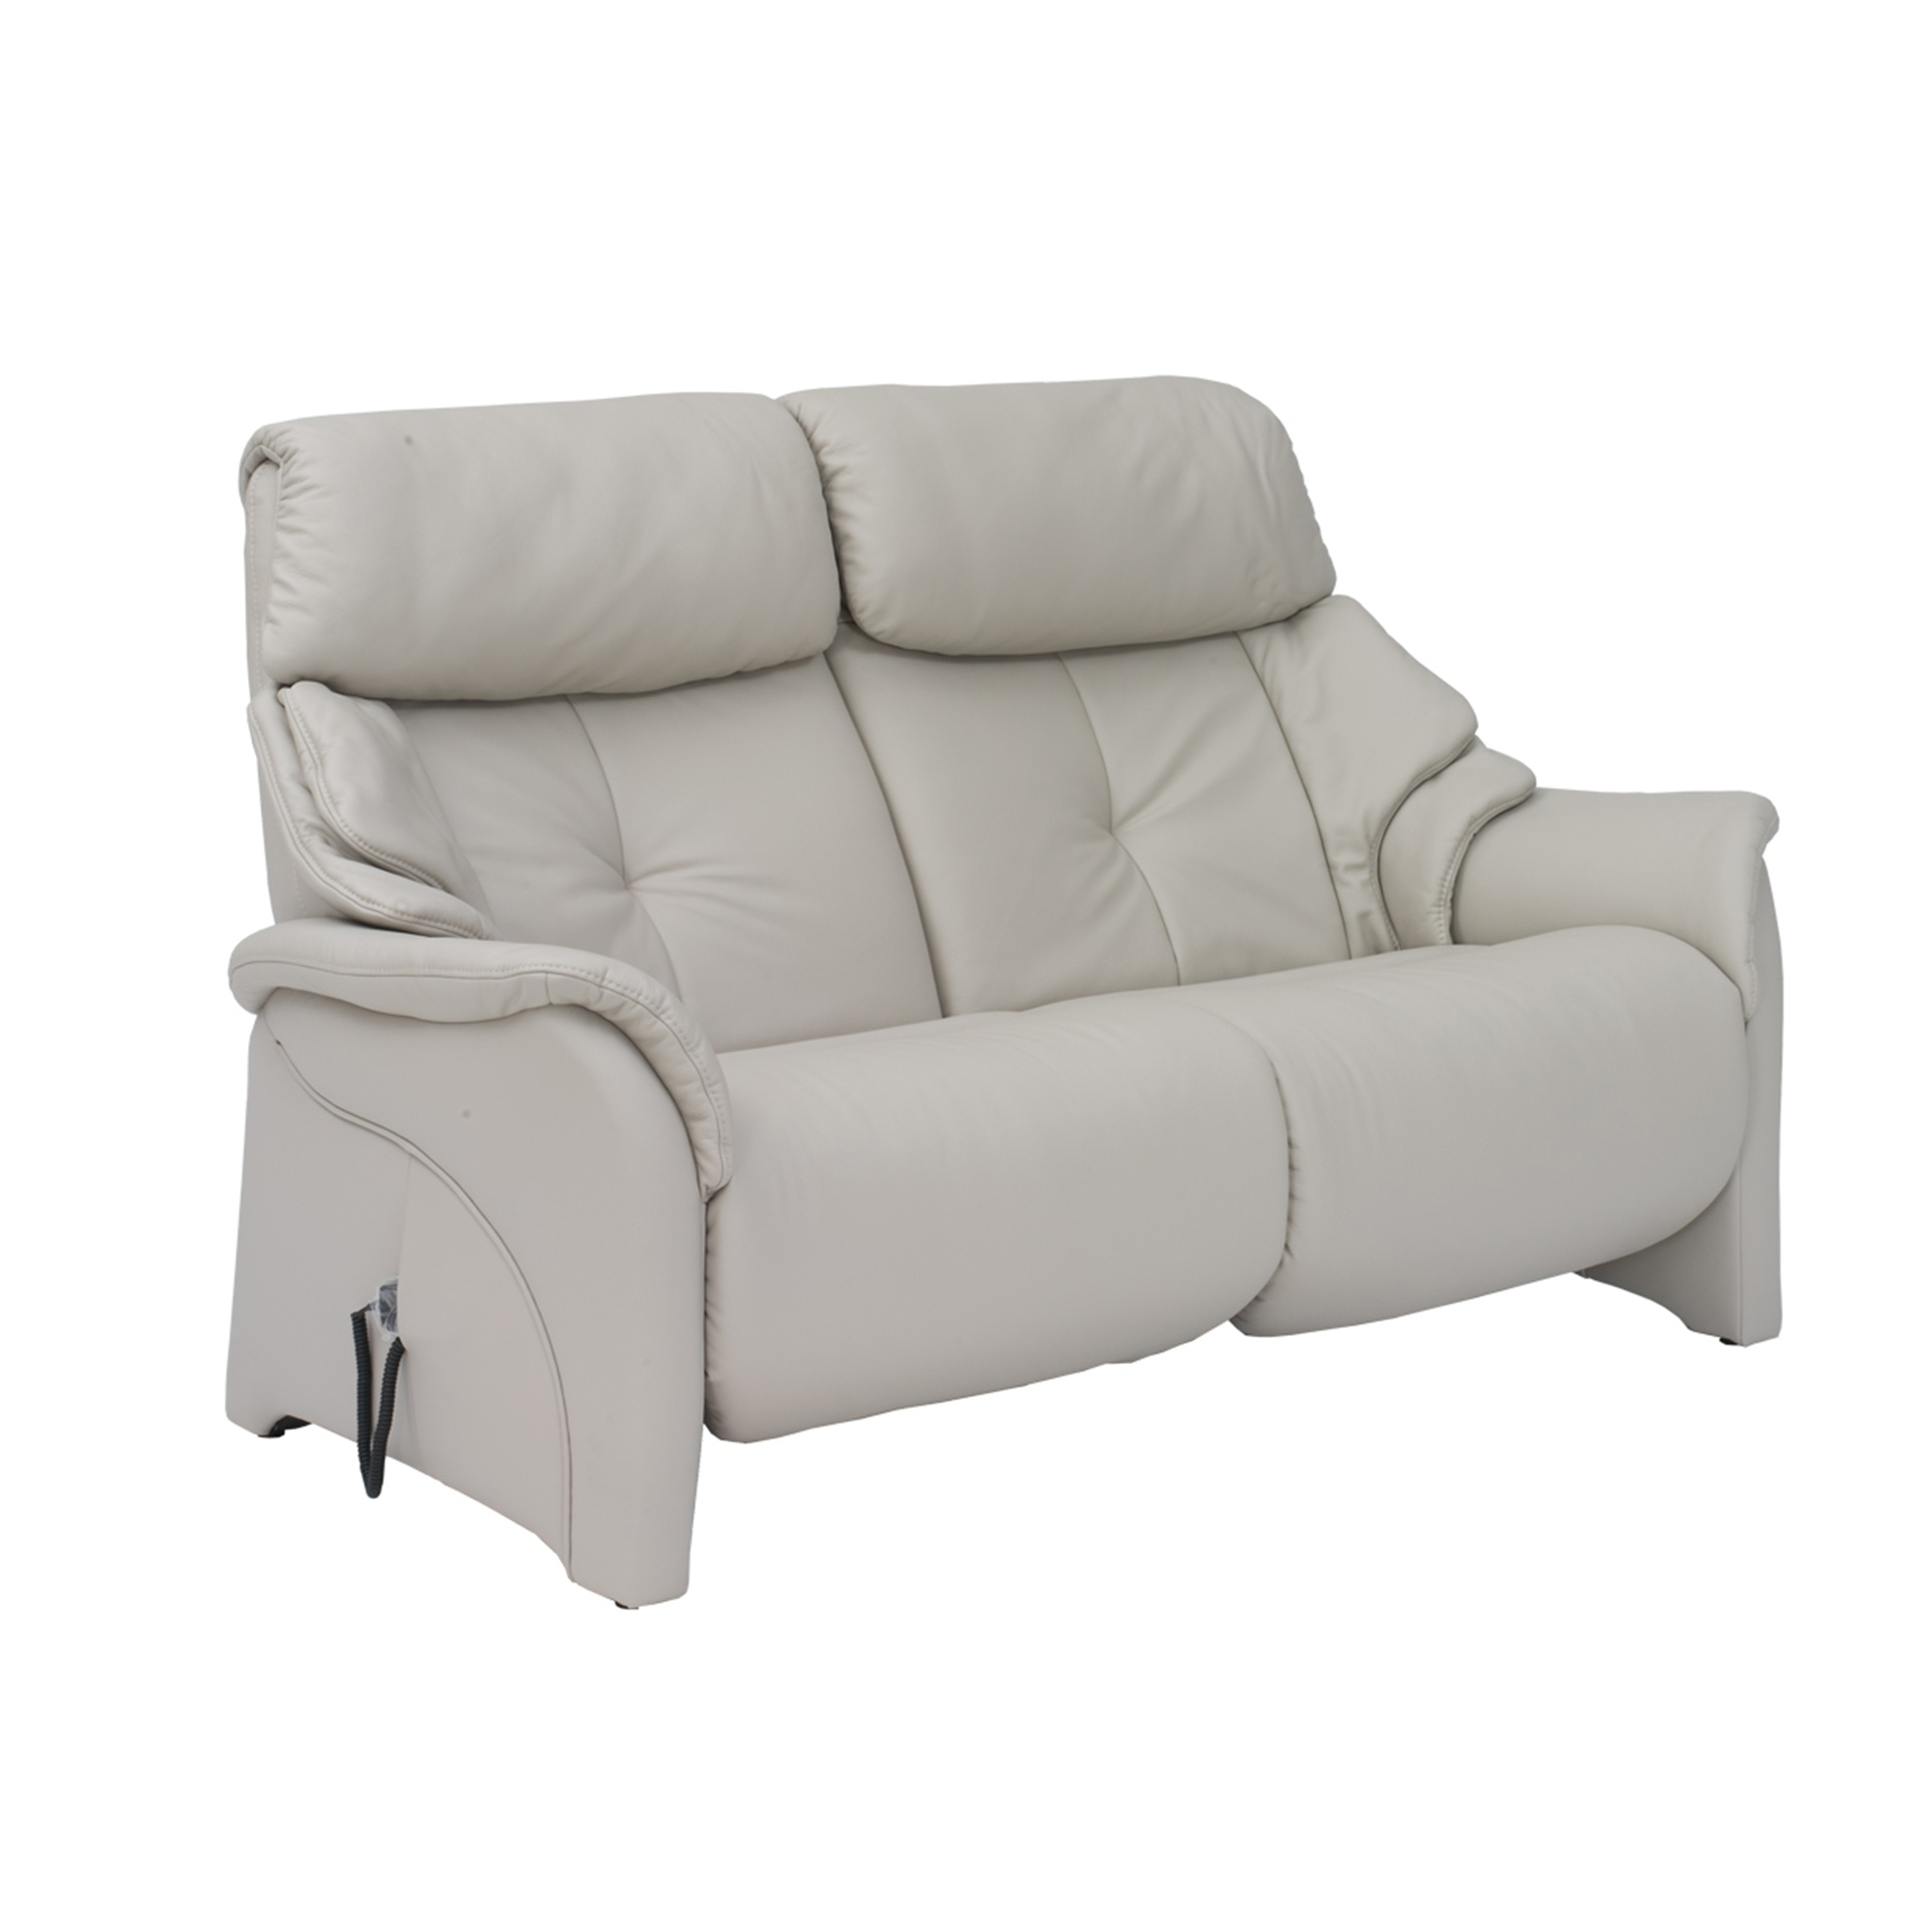 9000258599 Himolla Chester 2 Seater Electric Recliner Sofa